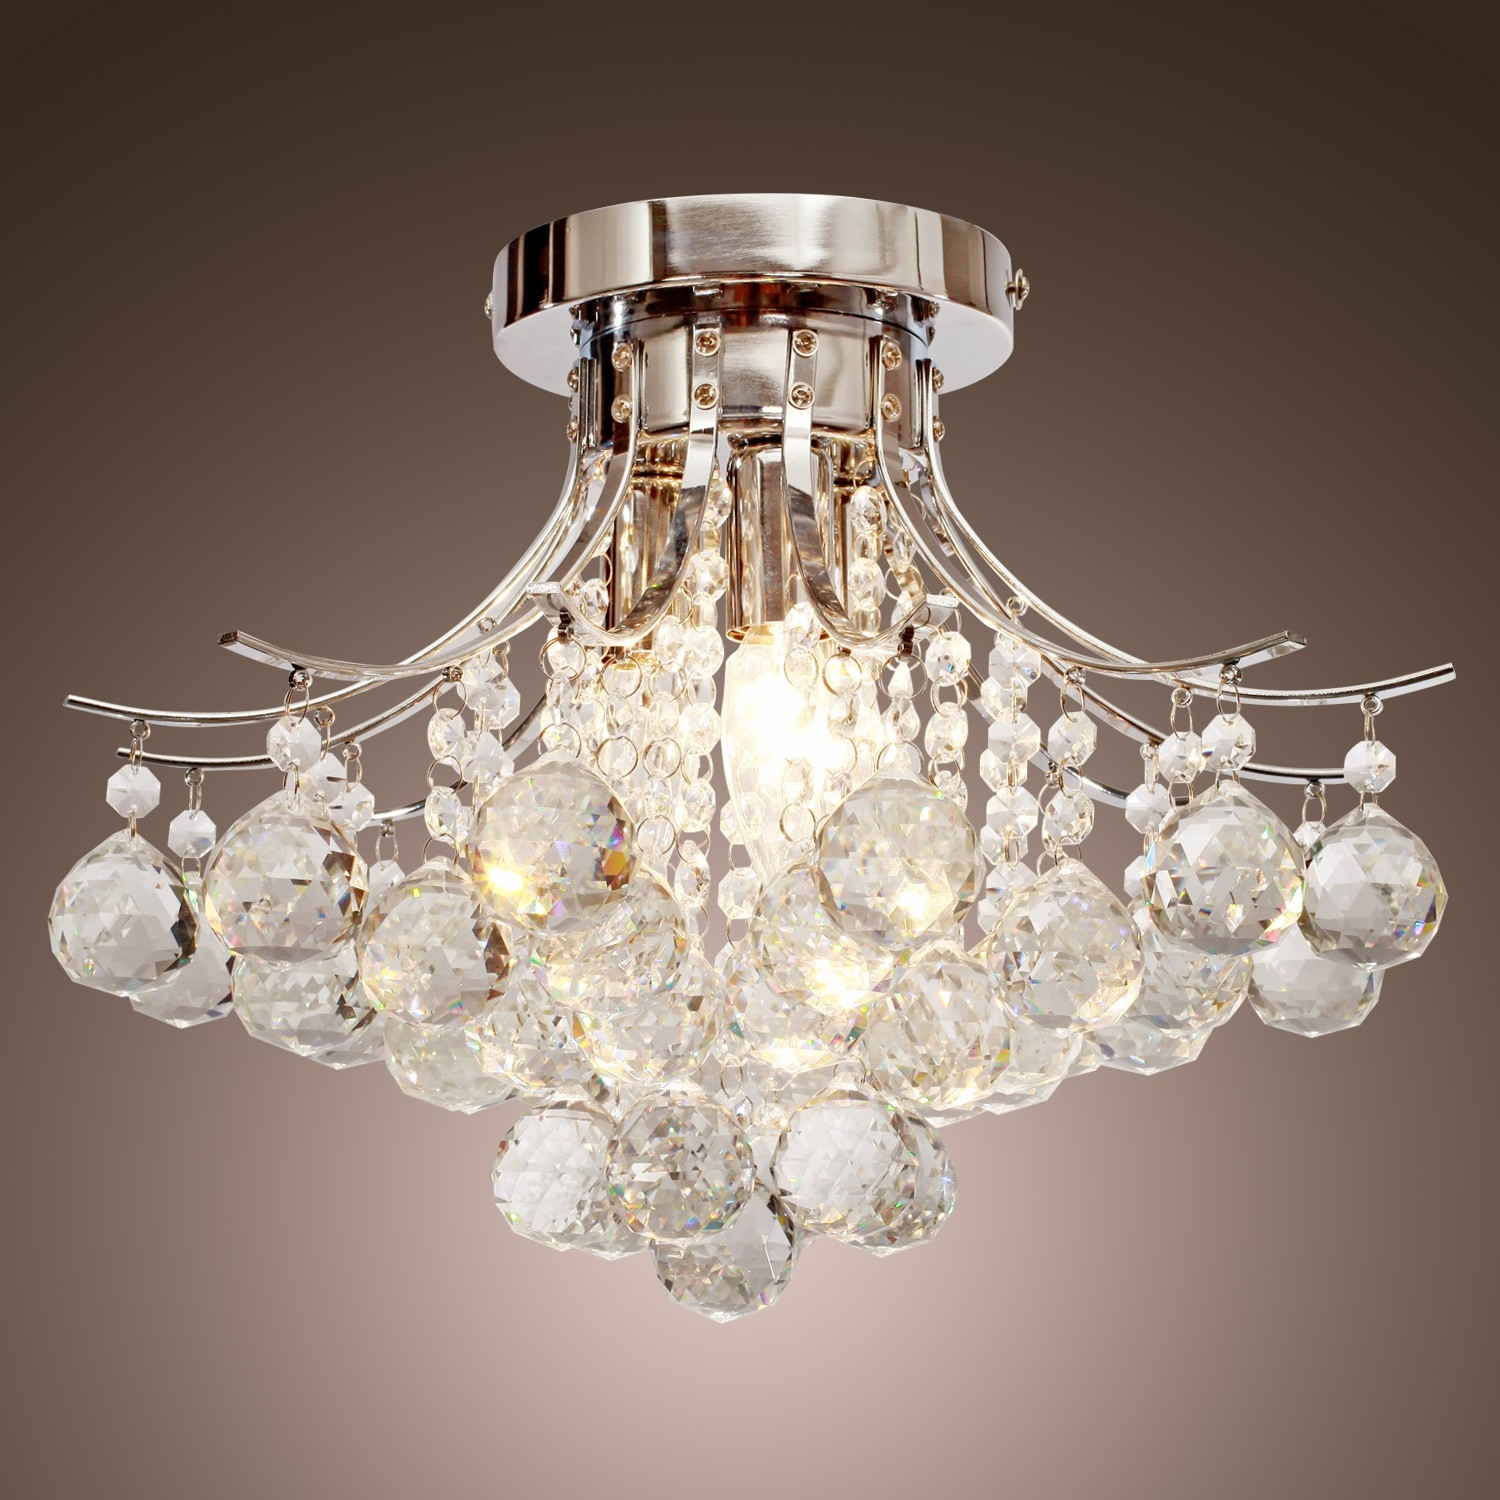 Chrome Finish Crystal Chandelier With 3 Lights Mini Style Flush With Regard To 3 Light Crystal Chandeliers (Image 4 of 25)